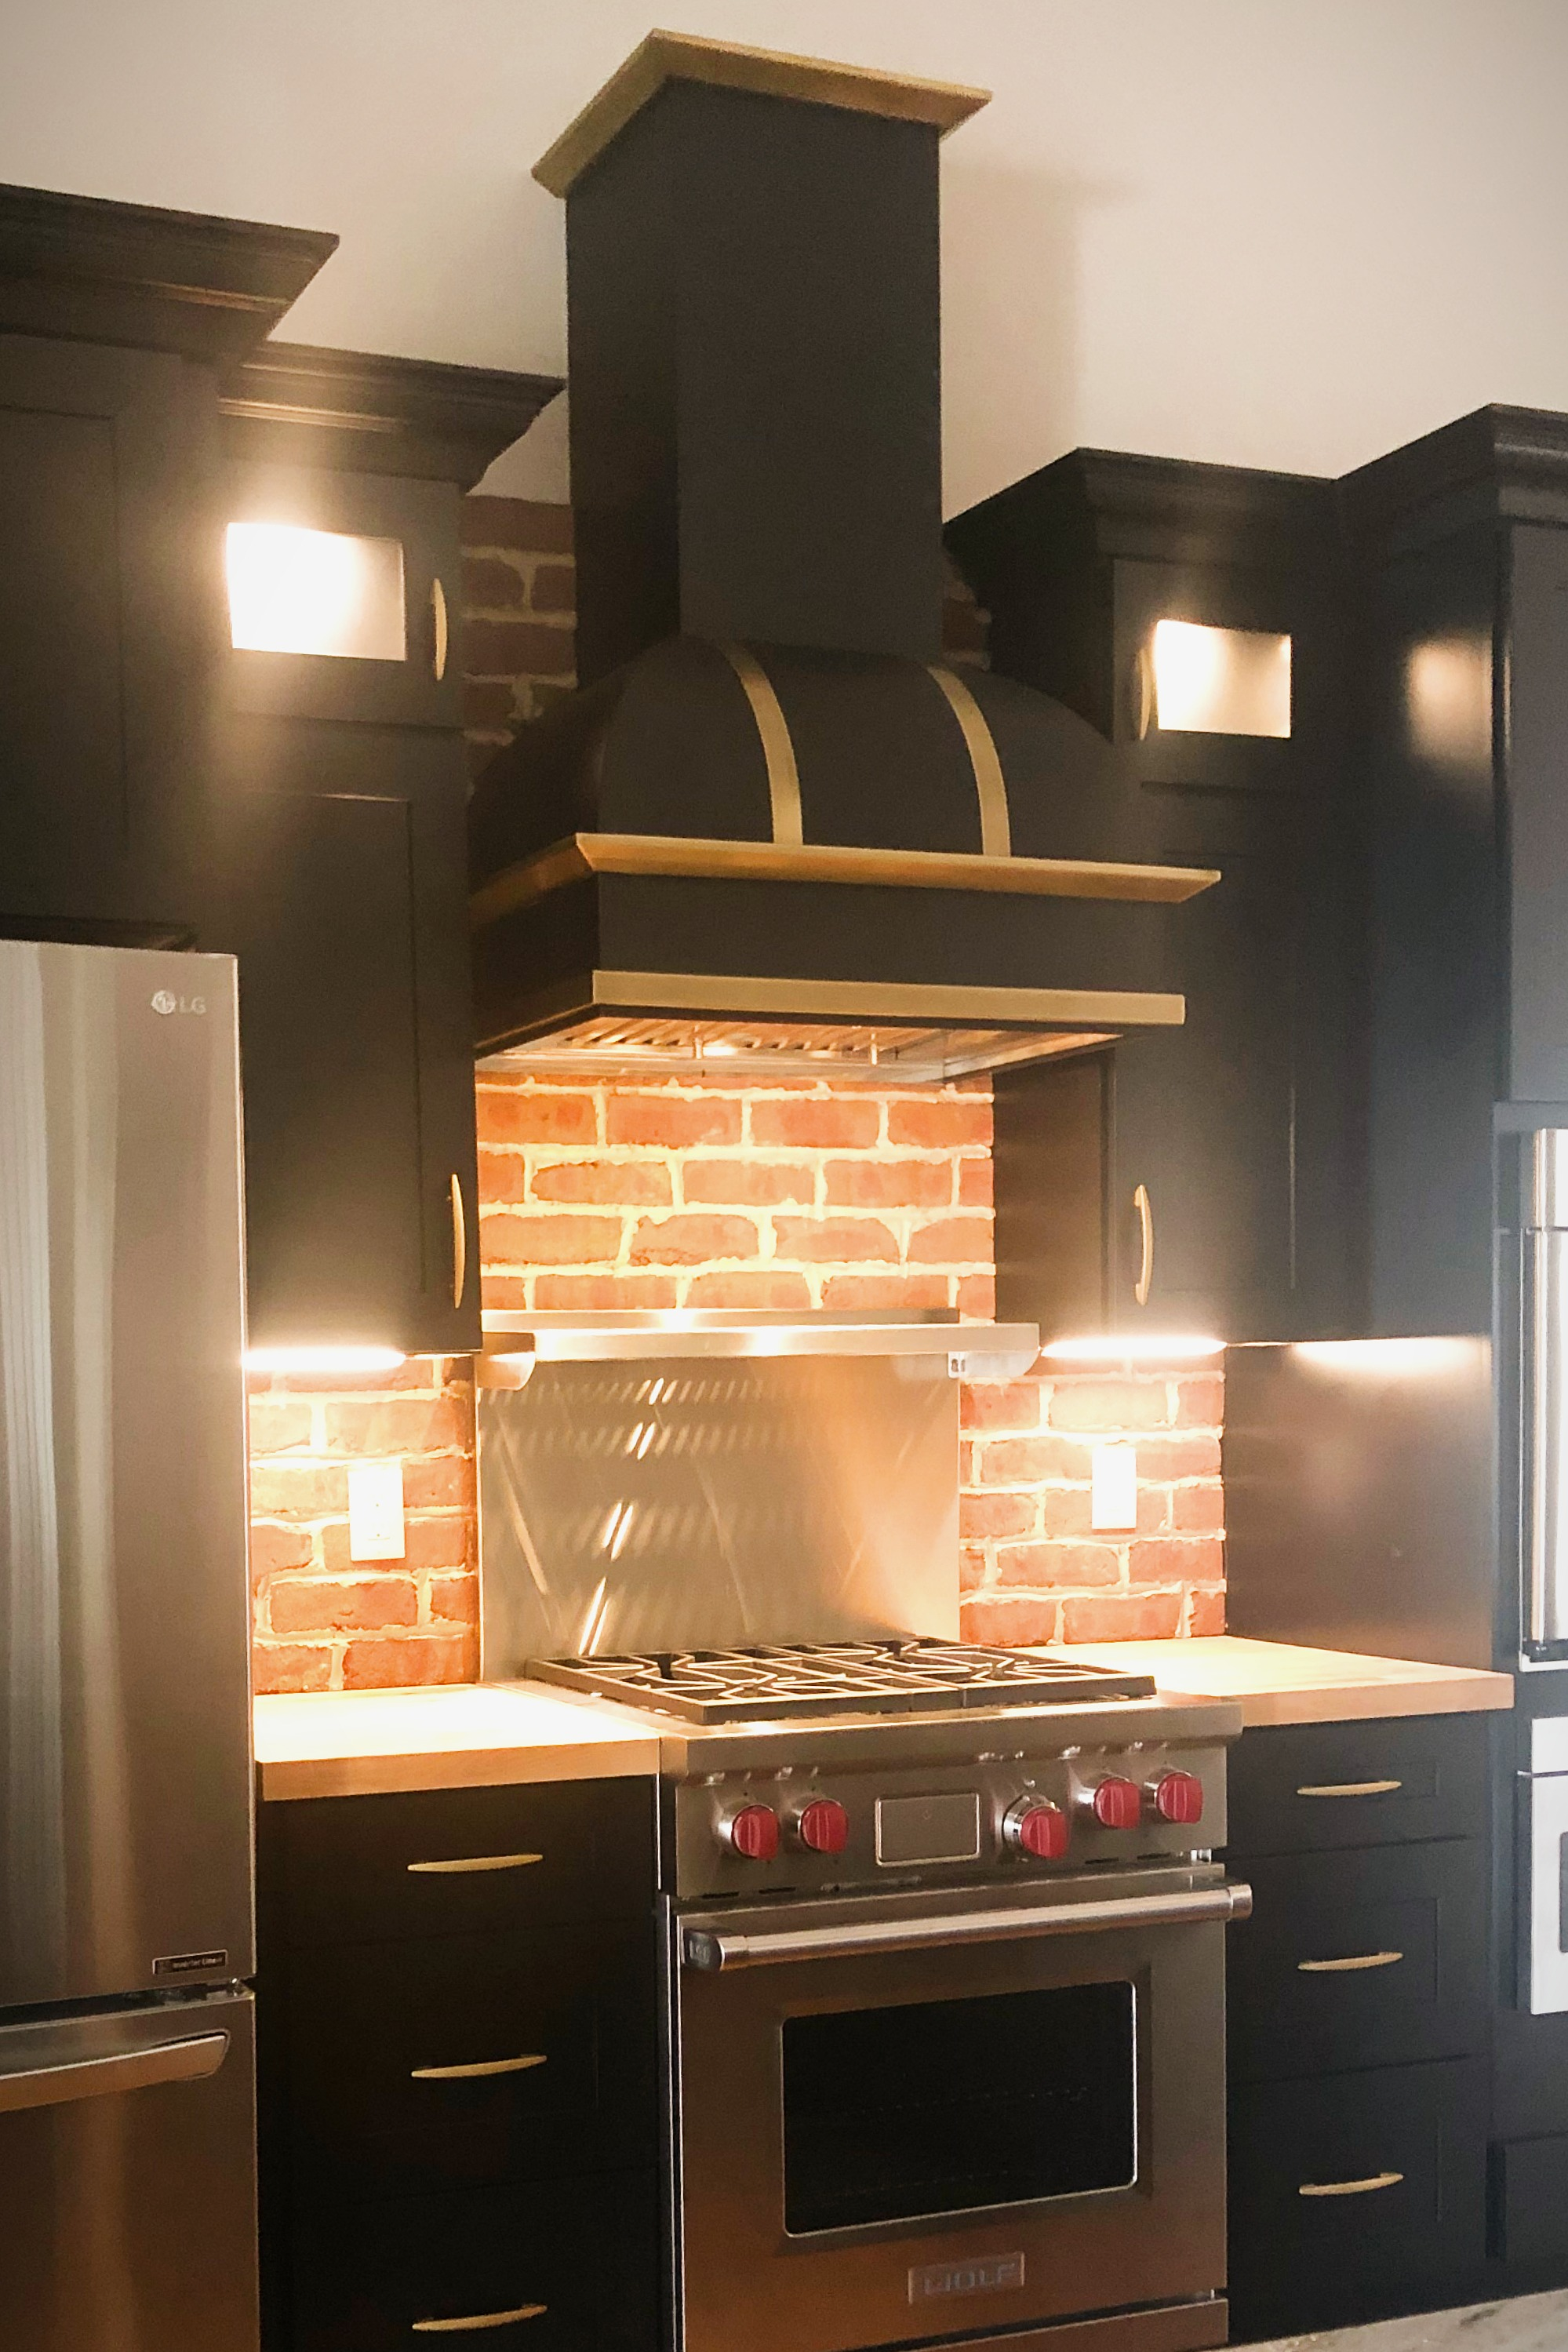 Flat Black Powder Coated Range Hood with